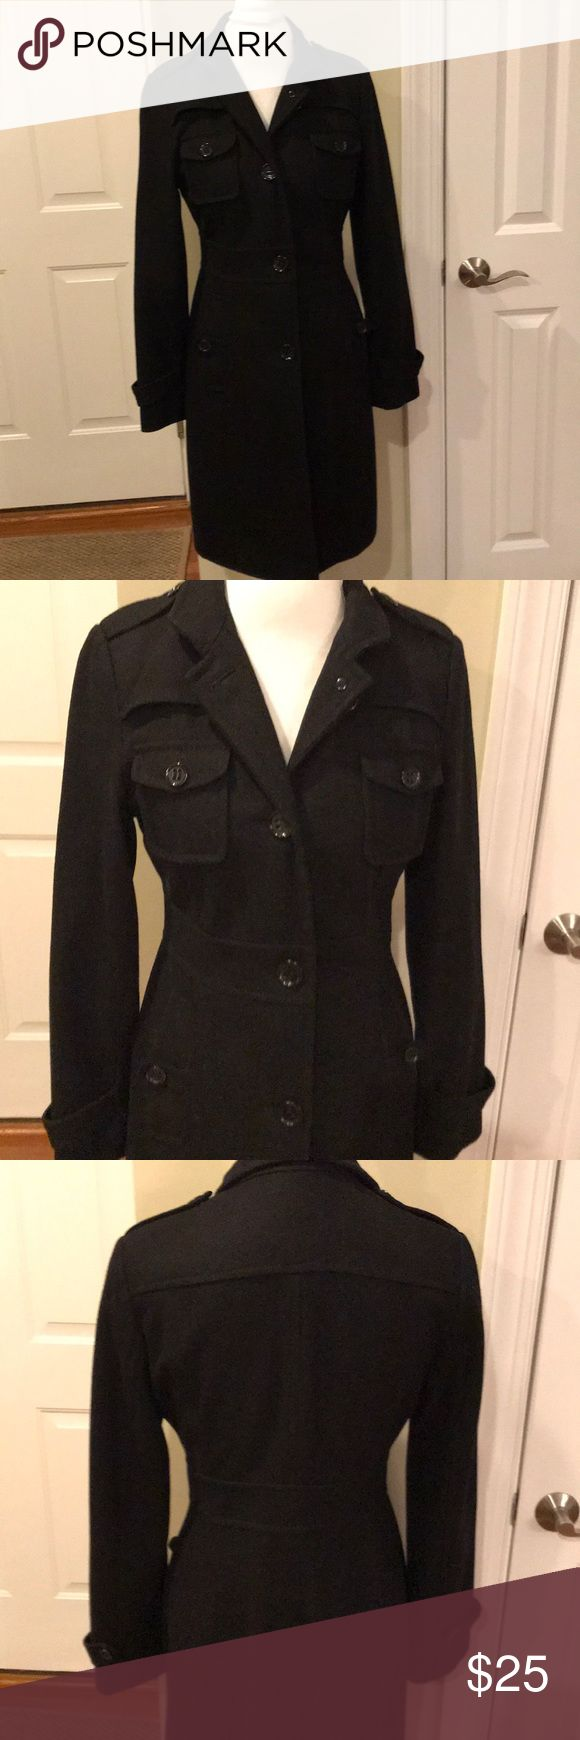 """Kenneth Cole Reaction ladies coat Black, wool blend coat, so warm and very figure flattering, ladies size 6.  Overall coat length is 37"""", arm length is 24"""".  From smoke/pet free home.  Please ask me for more measurements.  :-) Kenneth Cole Reaction Jackets & Coats"""